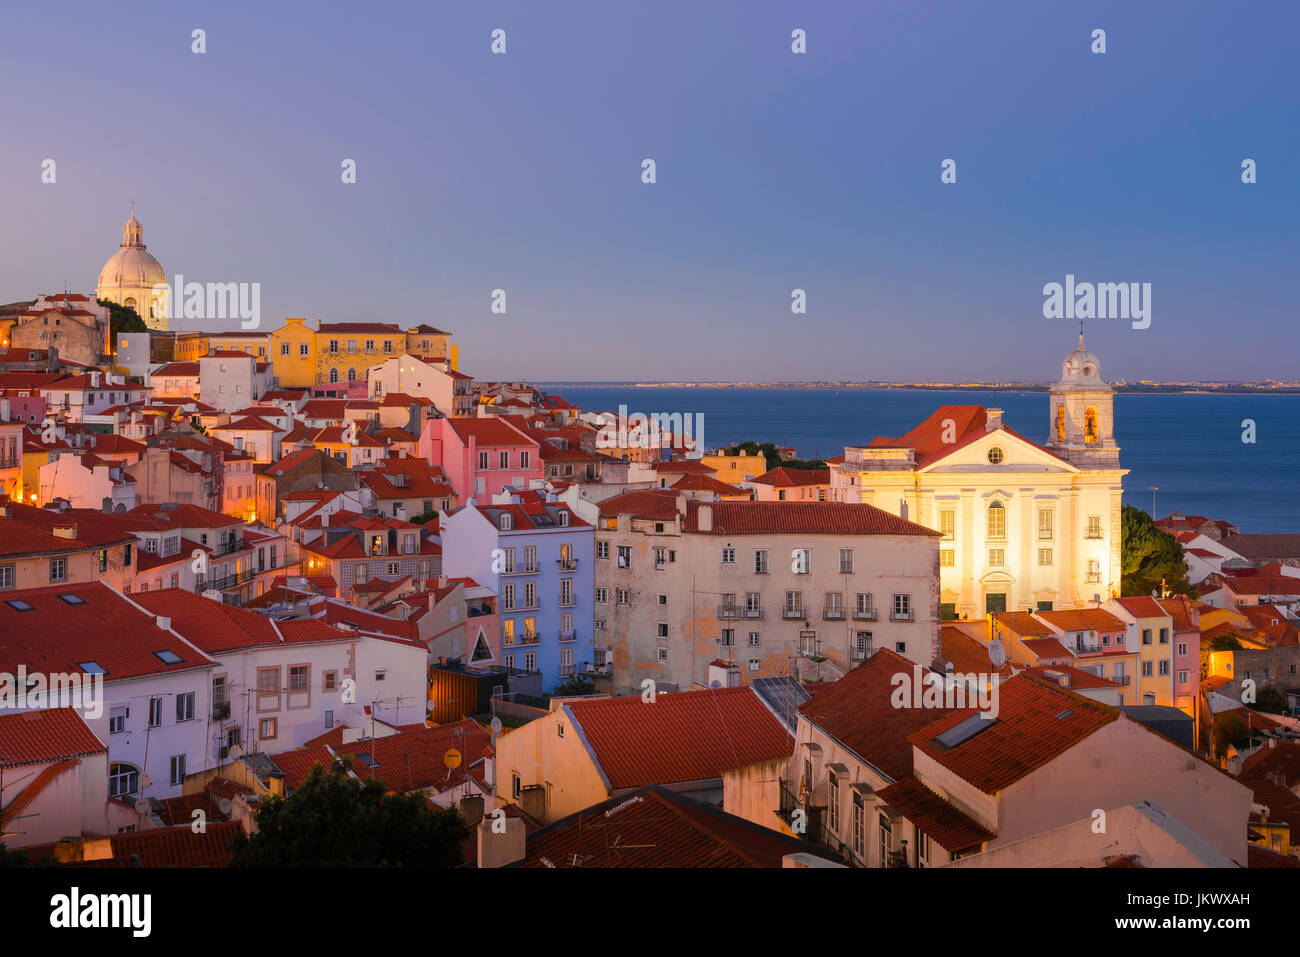 Lisbon Portugal cityscape, view of the Alfama skyline at night with the Sao Estevao church illuminated, Lisbon Portugal. - Stock Image